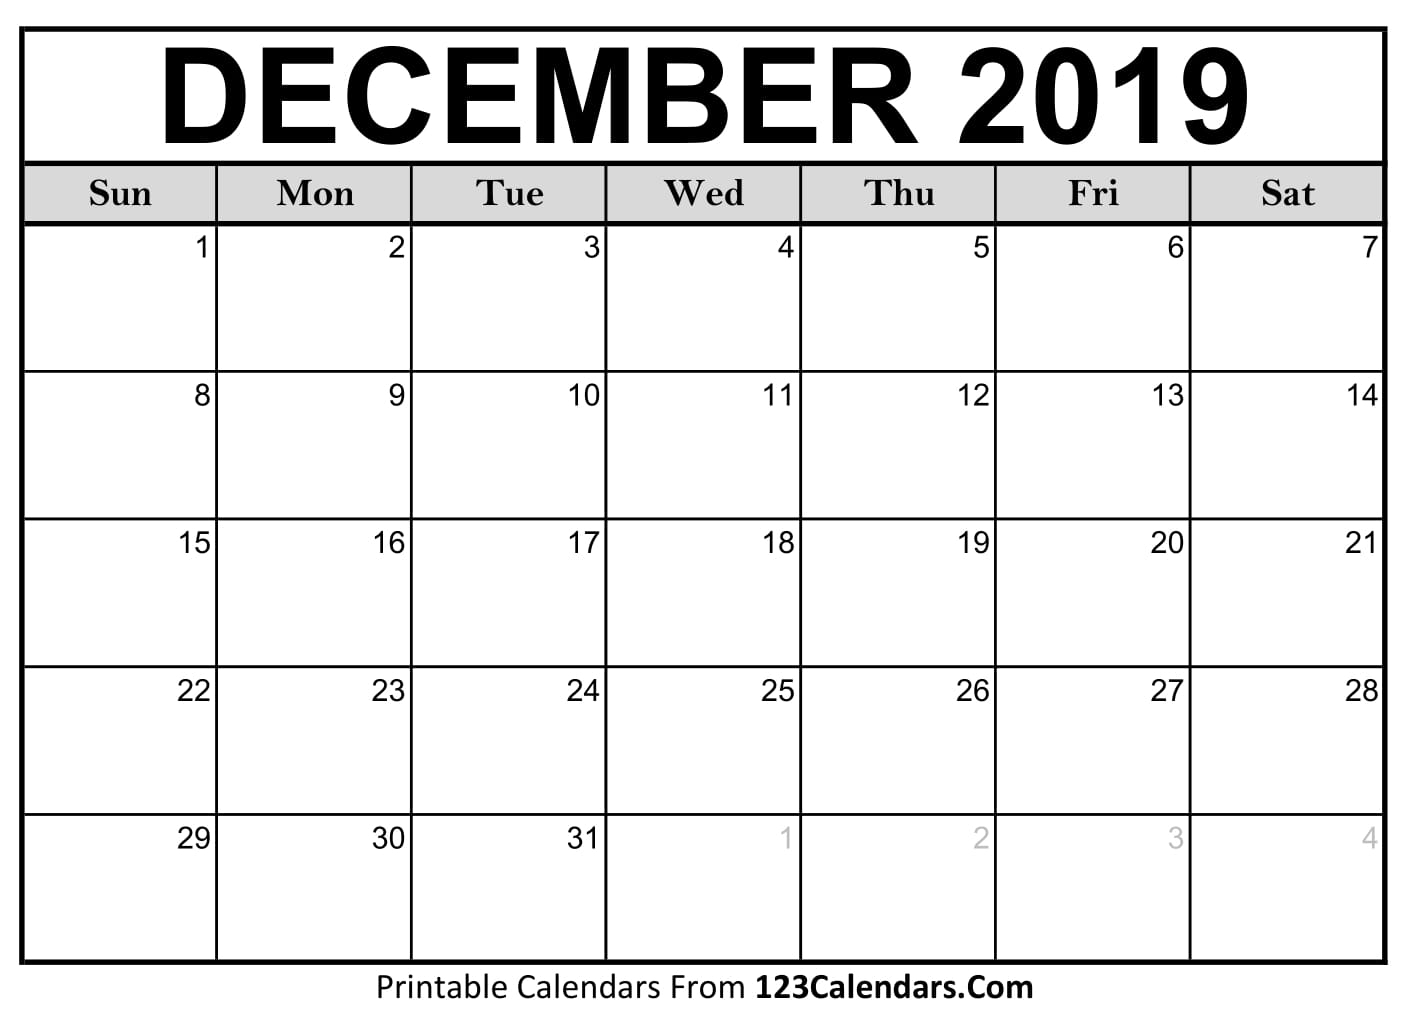 December 2019 Printable Calendar | 123Calendars pertaining to Blank Printable Calendar December